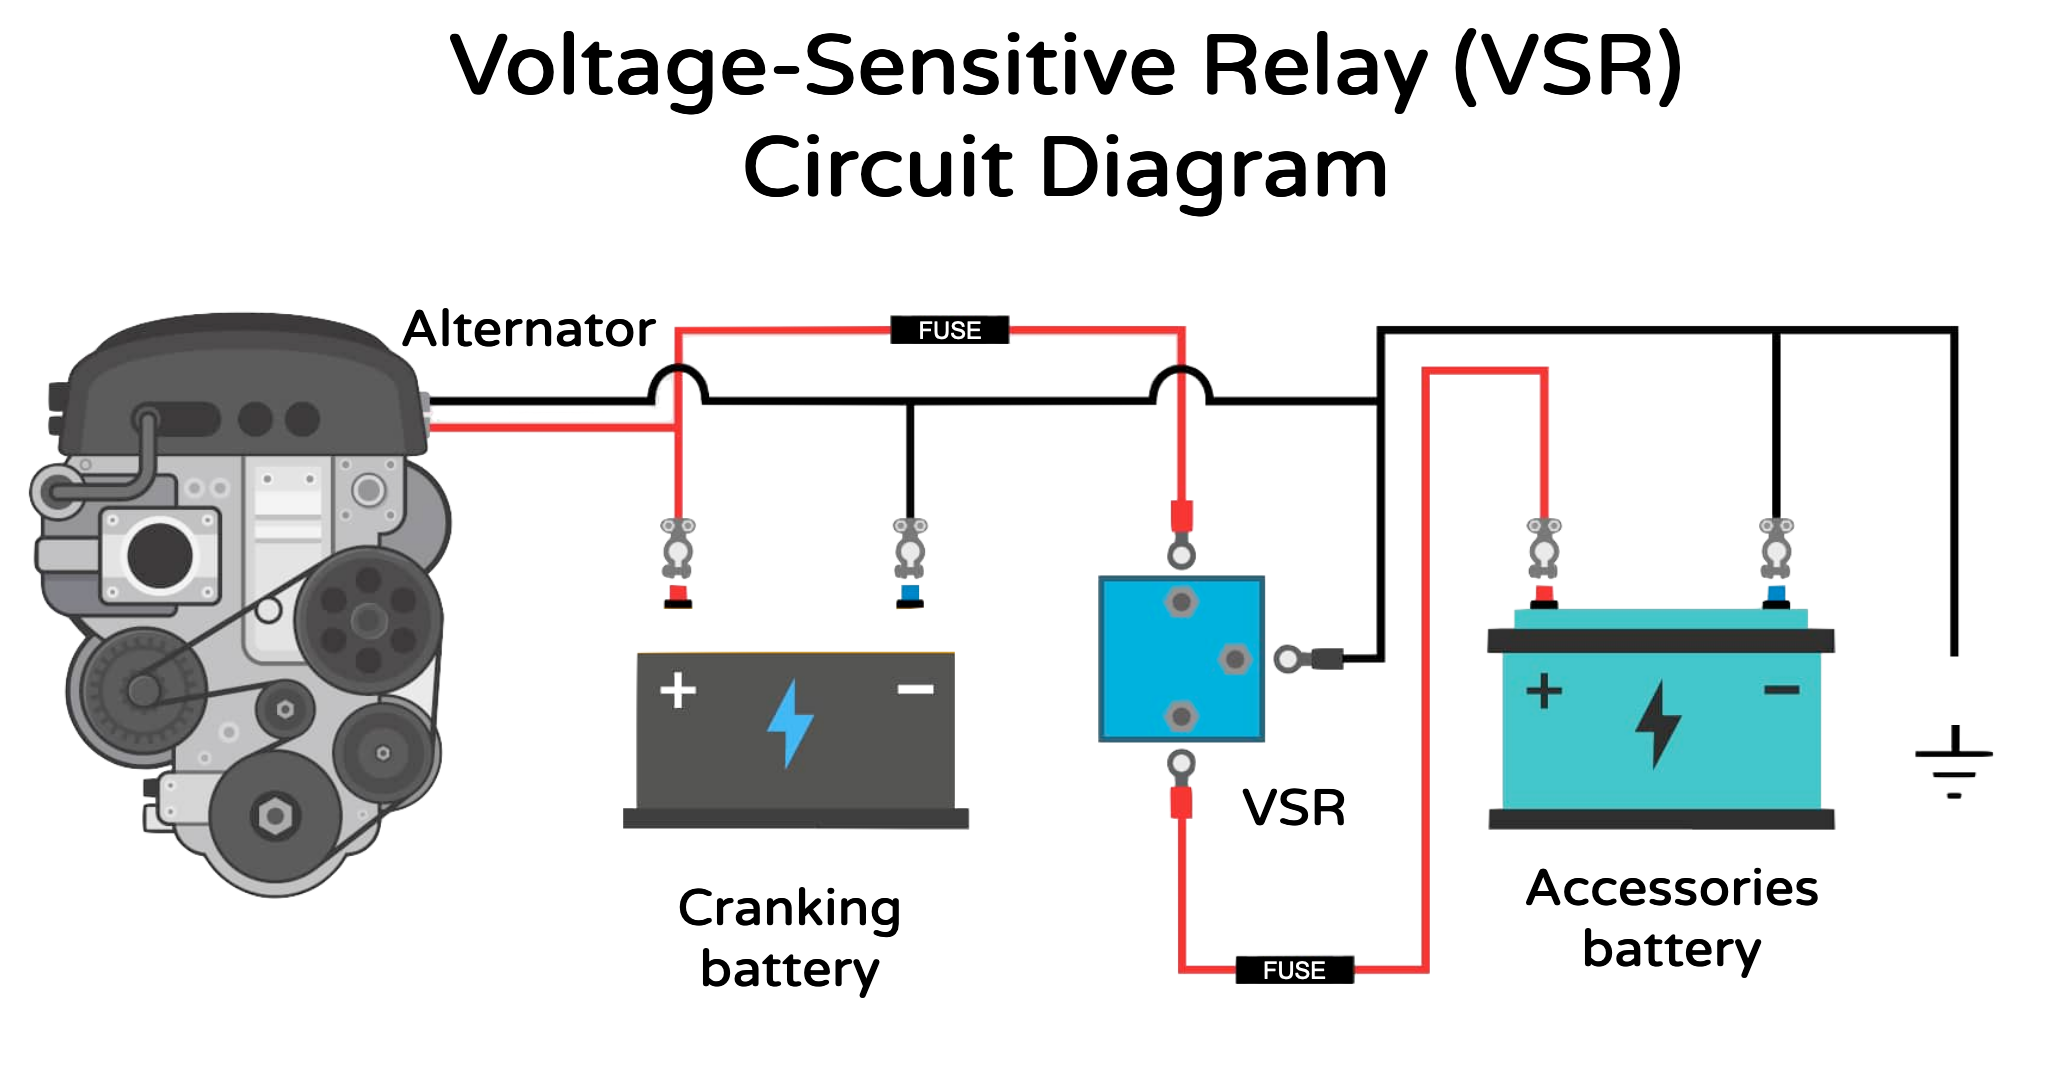 VSR (Voltage Sensitive Relay) circuit diagram for car/RV/4x4 dual battery system